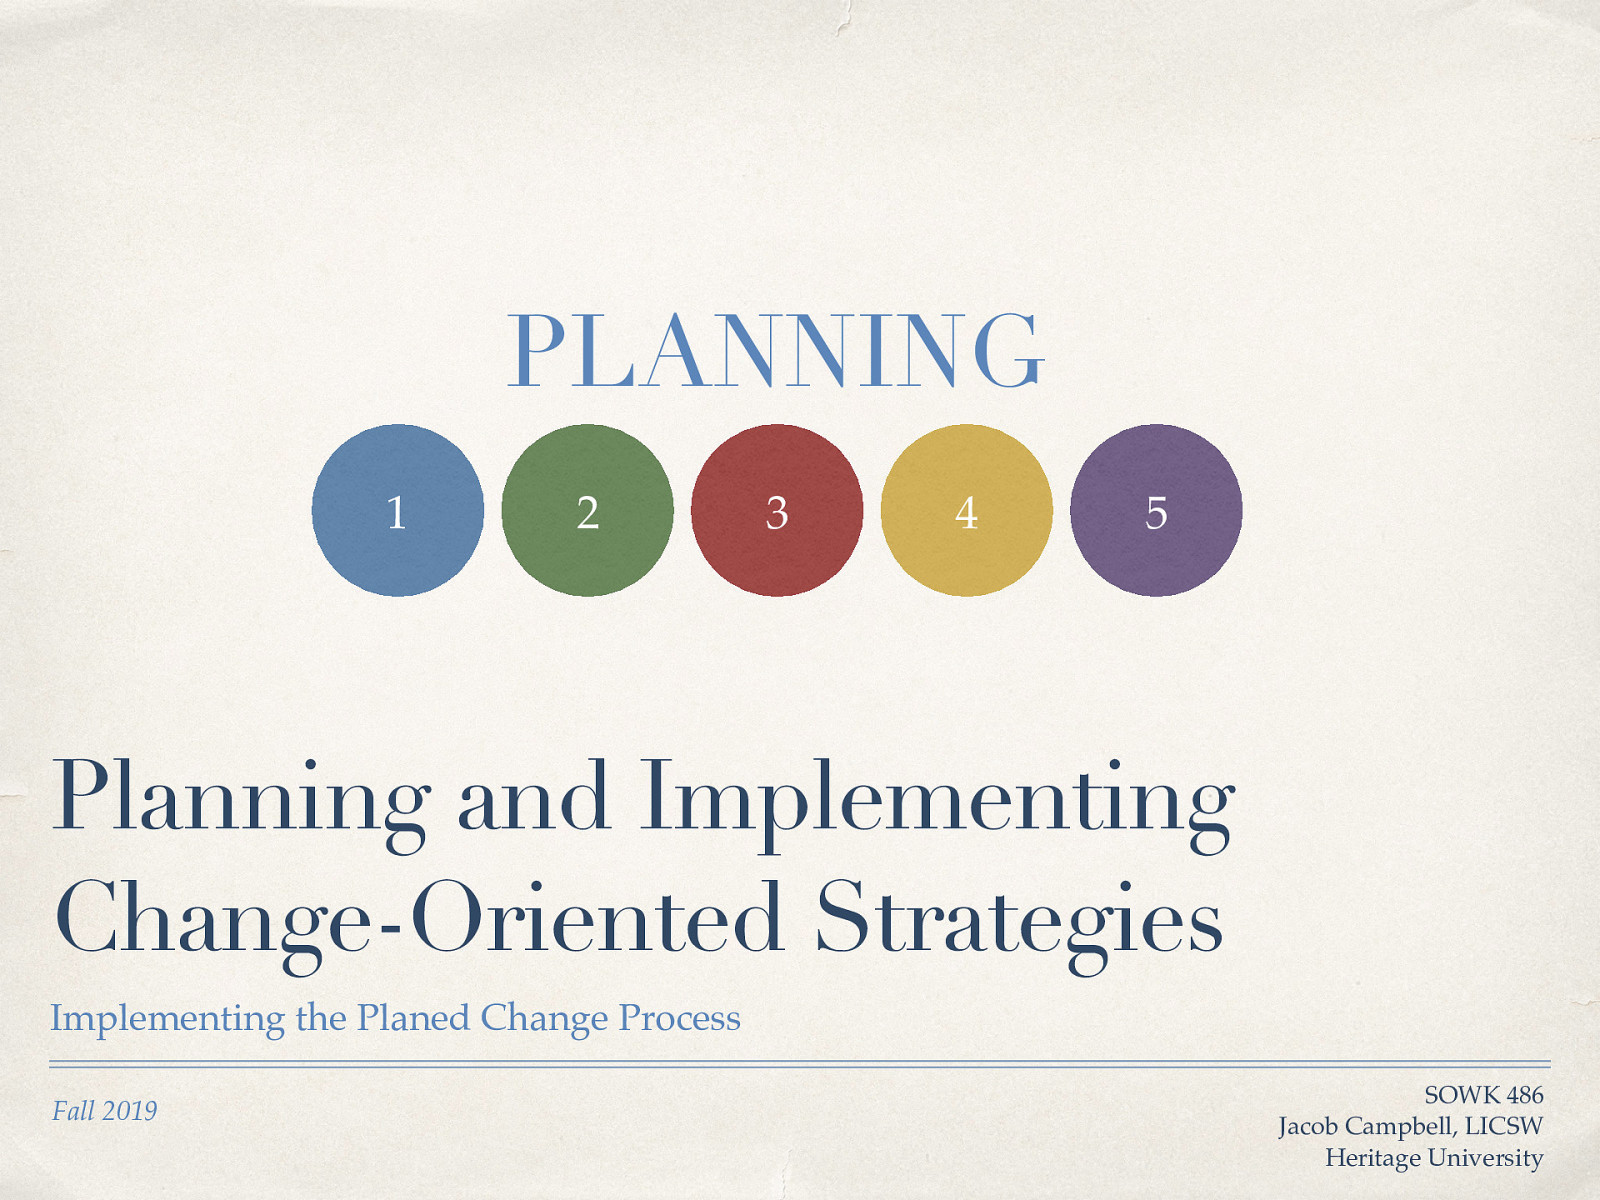 Planning and Implementing Change-Oriented Strategies